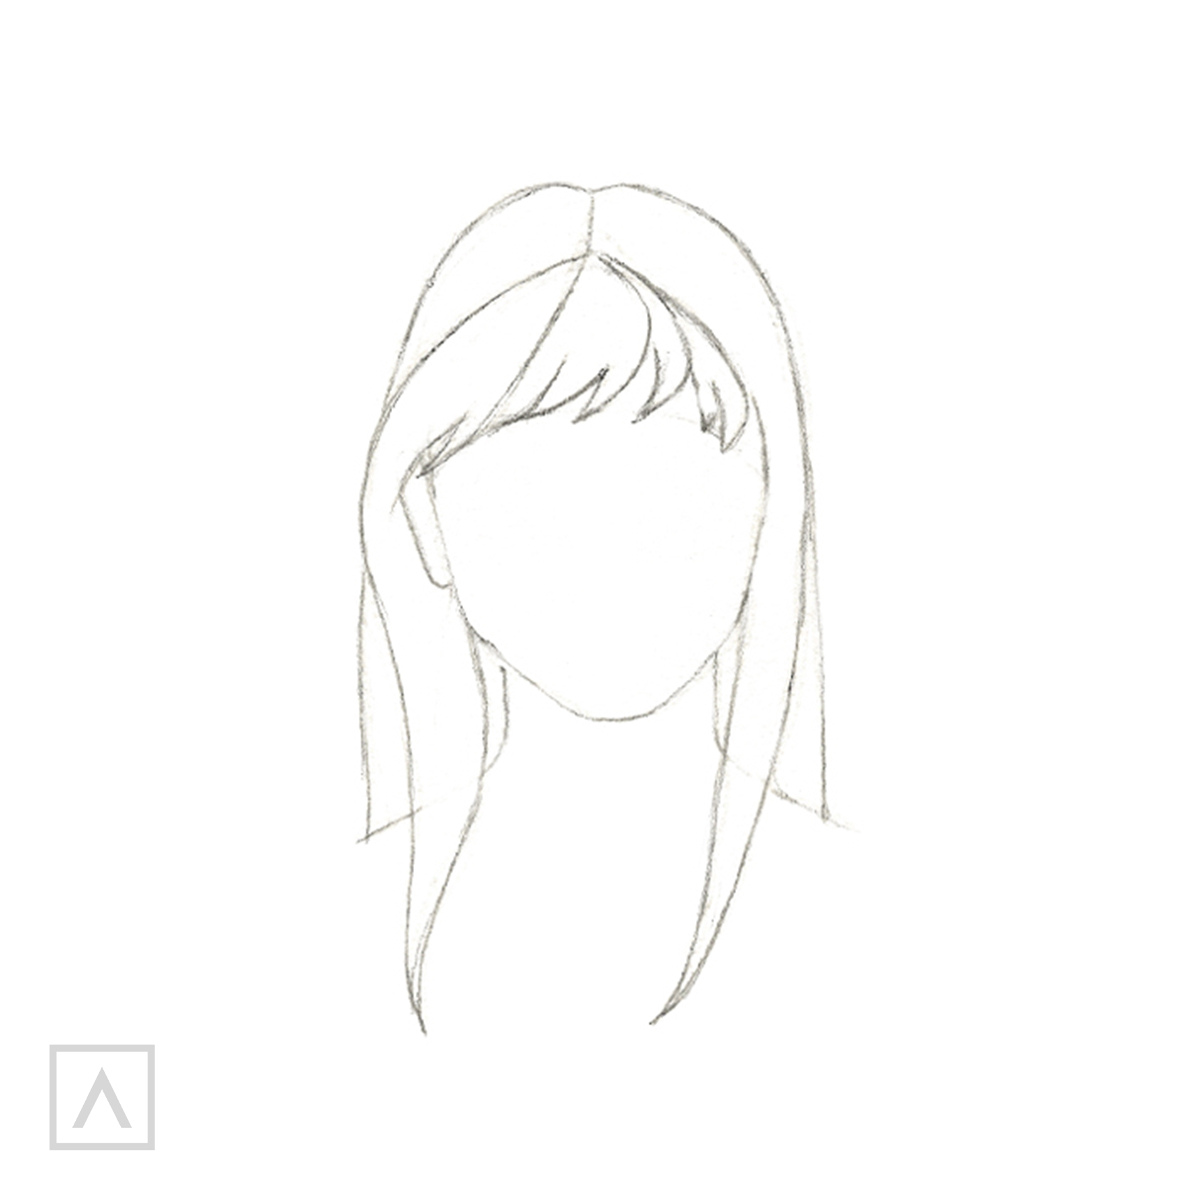 How to Draw Hair with Bangs - Step 5